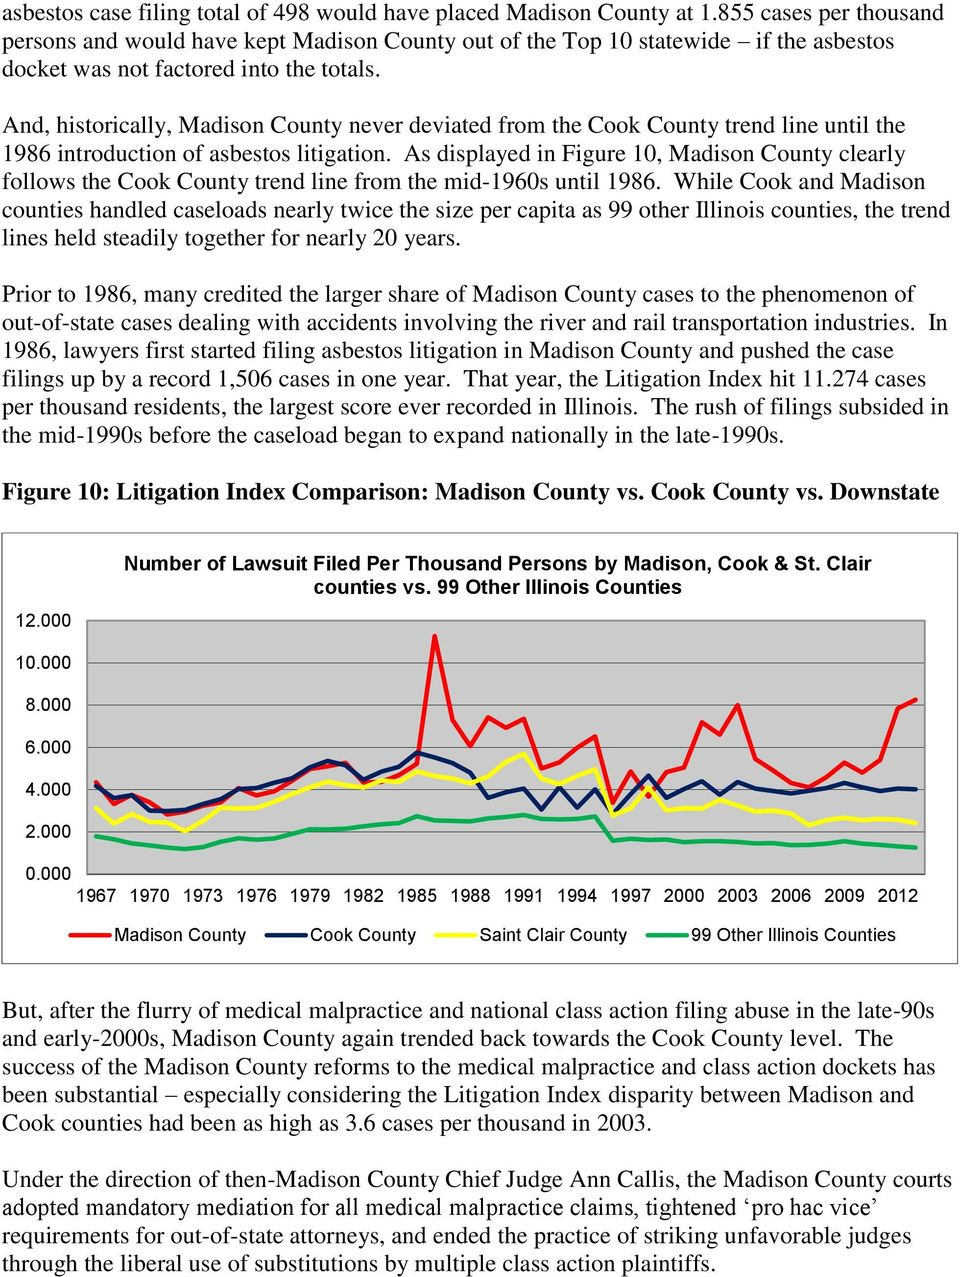 And, historically, Madison County never deviated from the Cook County trend line until the 1986 introduction of asbestos litigation.